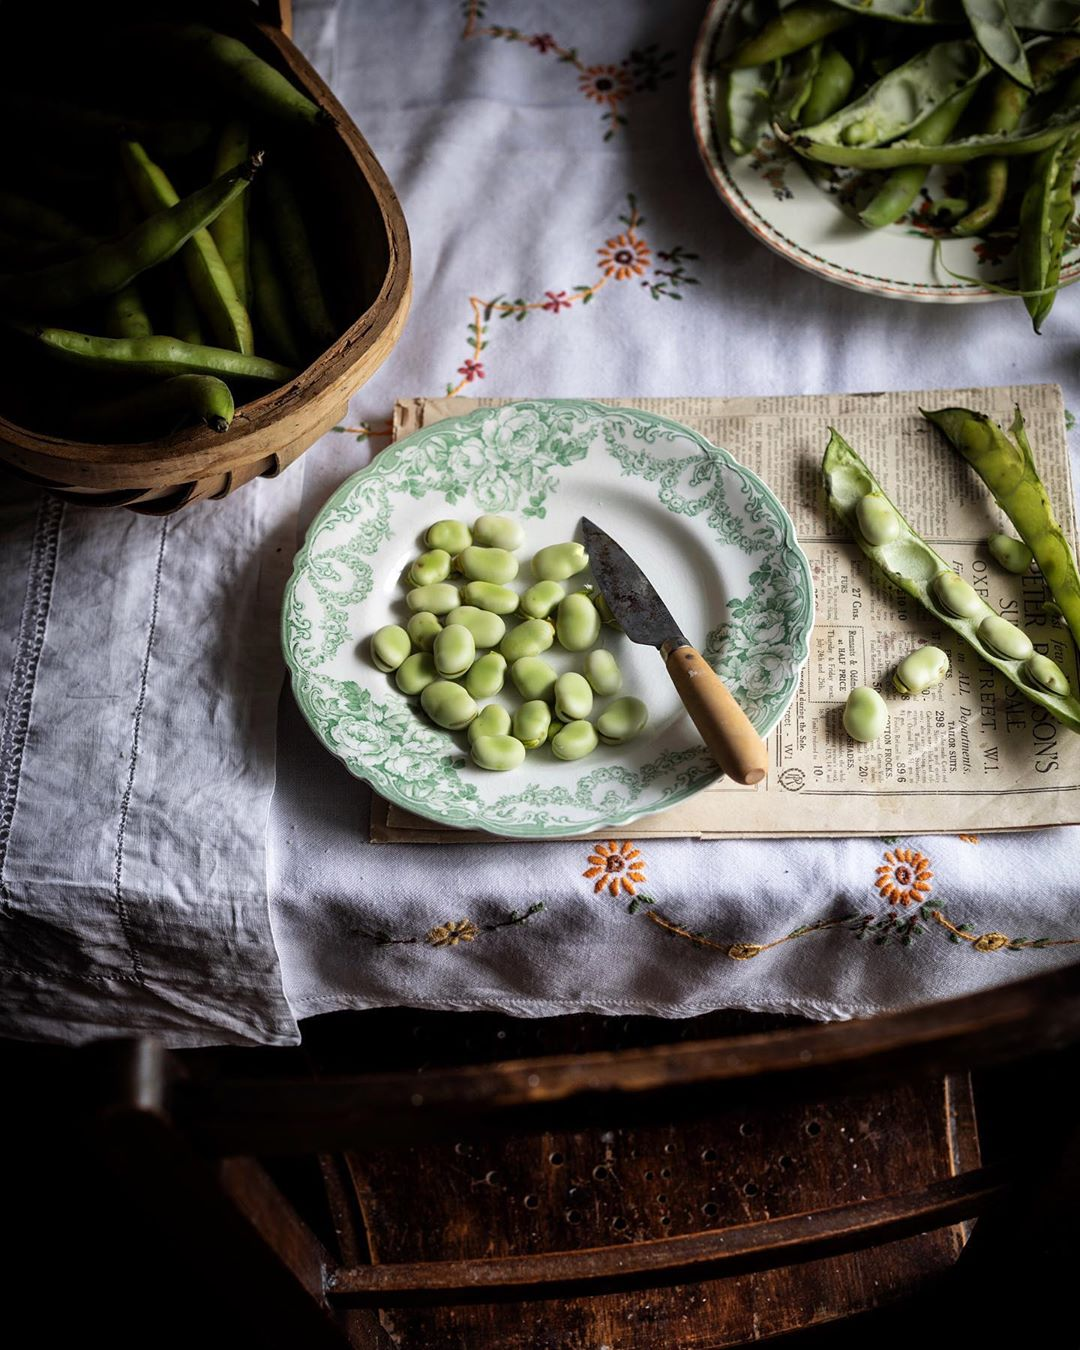 Preparing broad beans fresh from the garden. Source:  @twiggstudios